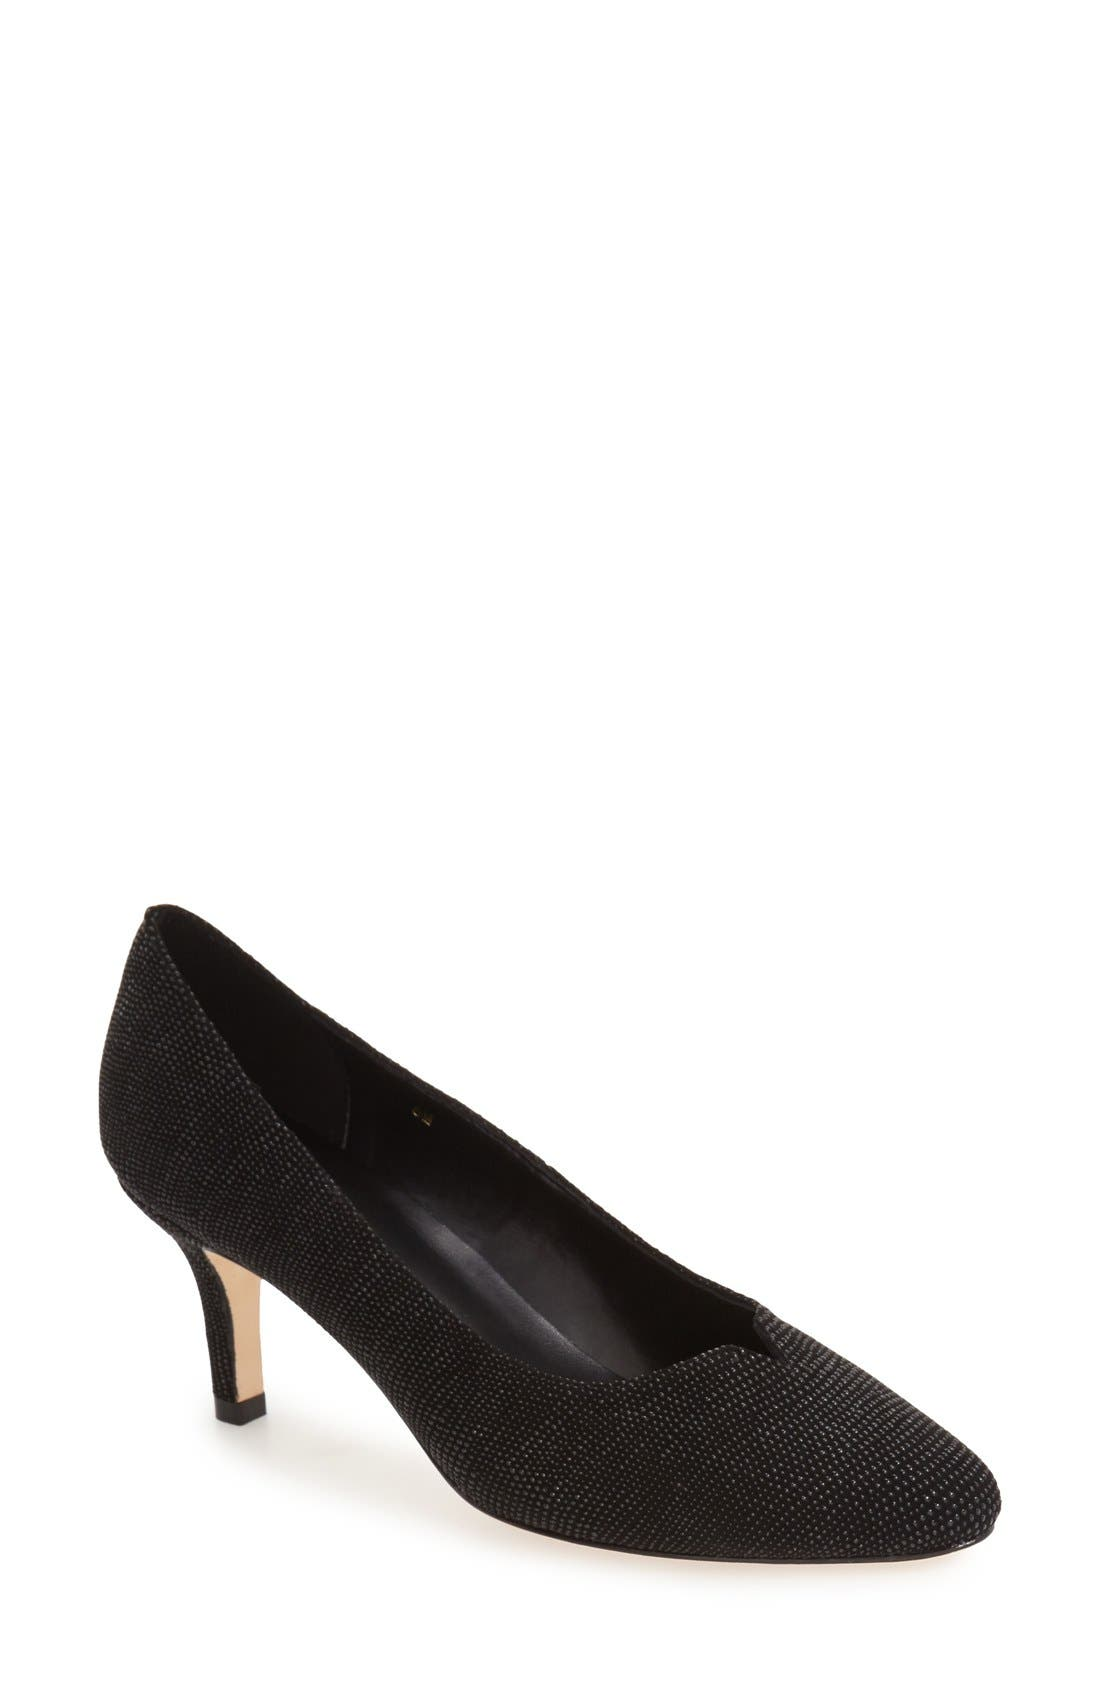 'Linden' Almond Toe Pump,                             Main thumbnail 1, color,                             Black Leather